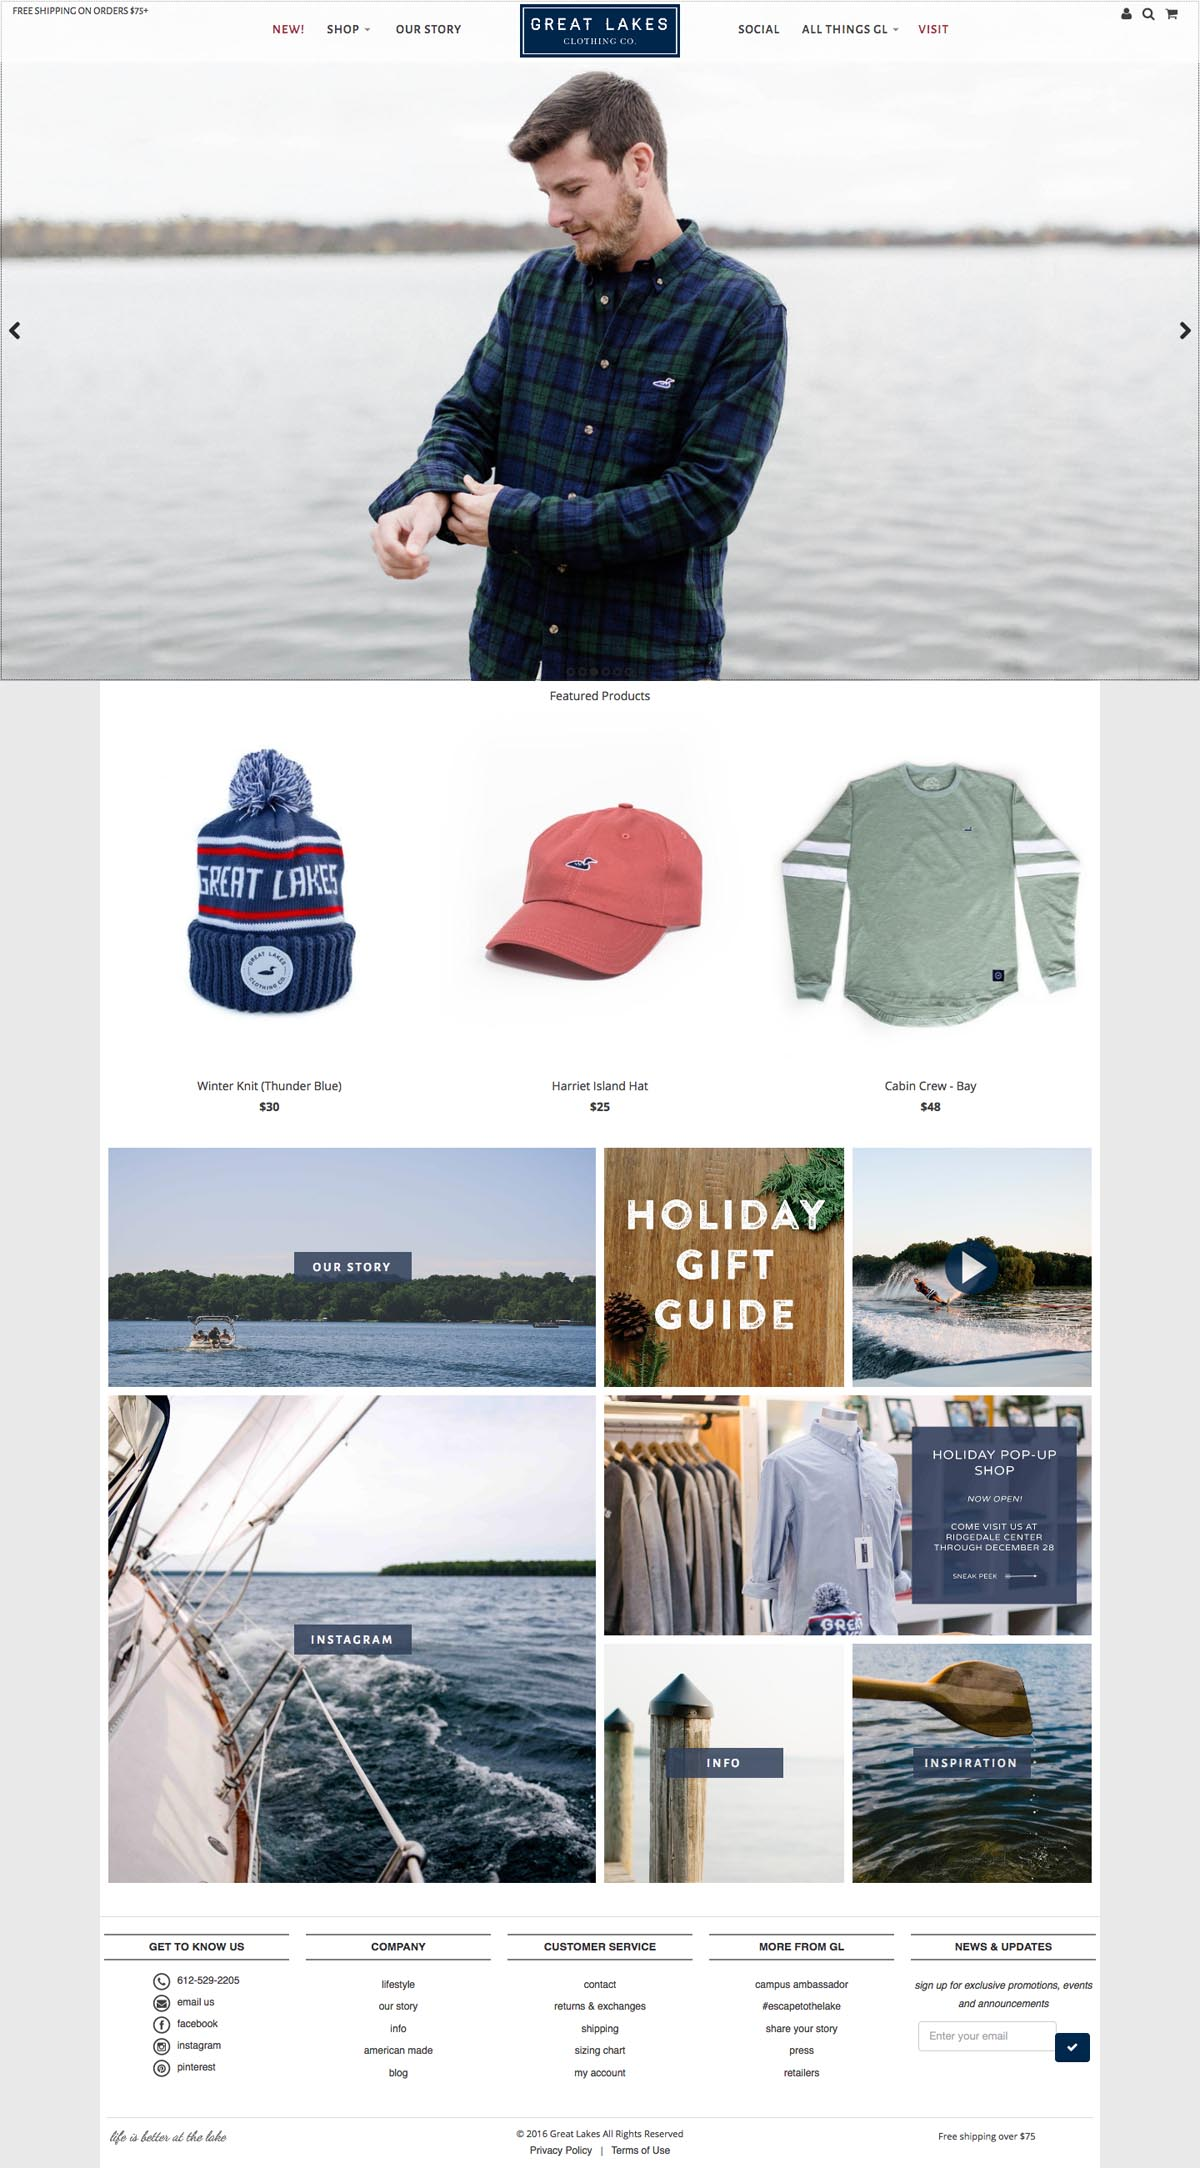 eCommerce website: Great Lakes